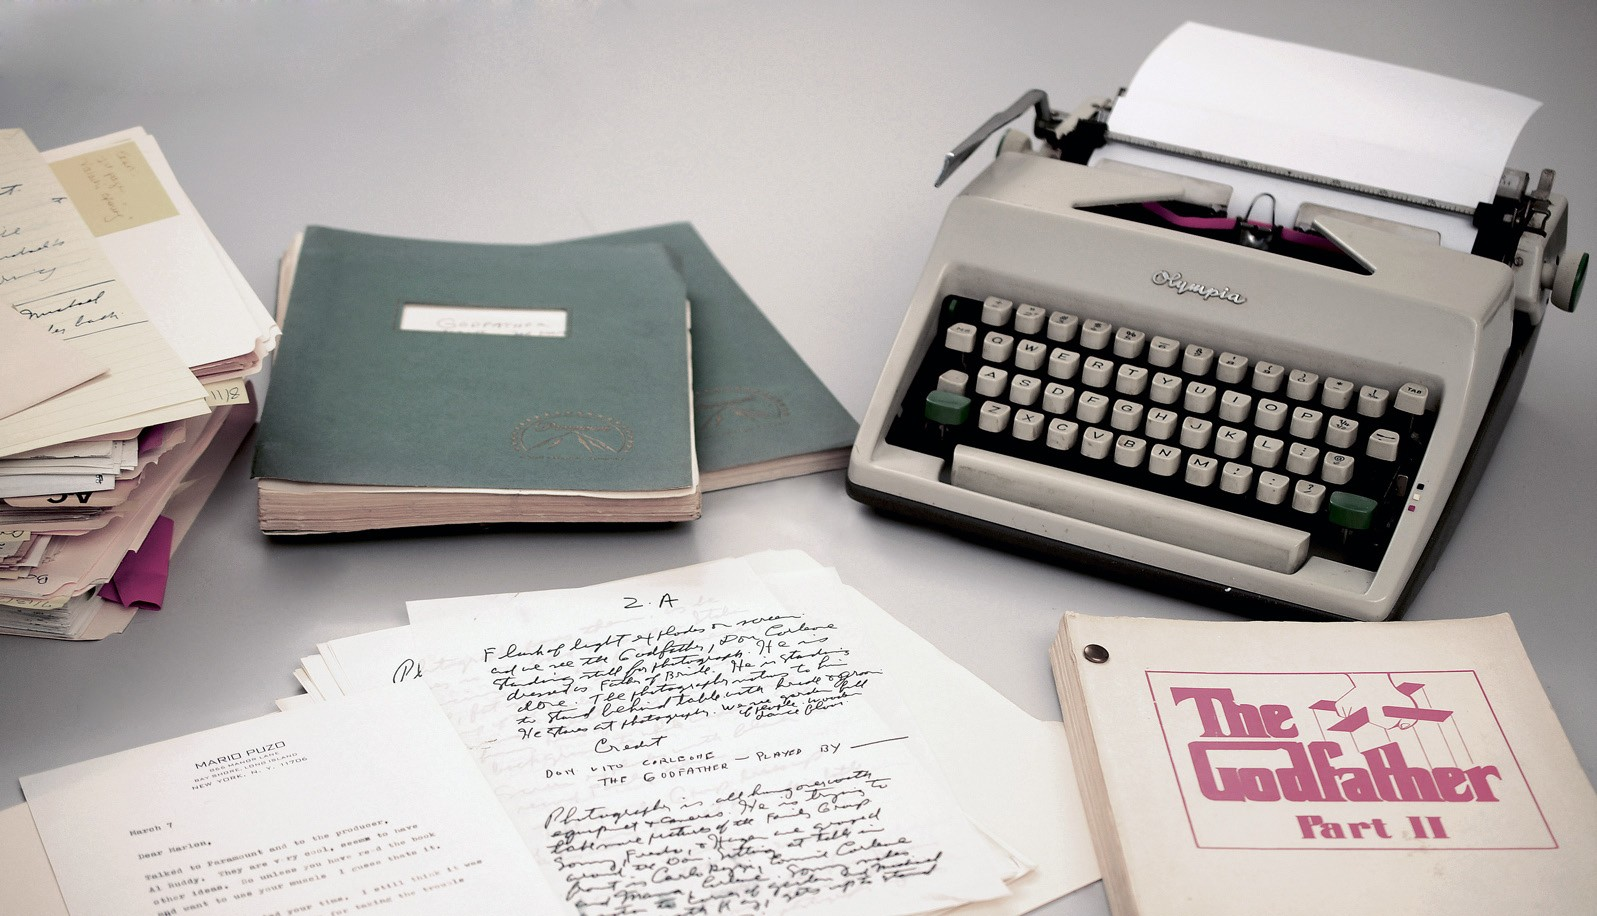 """This 2015 photo from RR Auction shows Mario Puzo's 1965 Olympia typewriter with manuscripts and versions of both """"The Godfather"""" and """"The Godfather Part II"""" screenplays. The items are part of a large collection of Puzo's papers to be auctioned by Boston-based RR Auction on Thursday."""